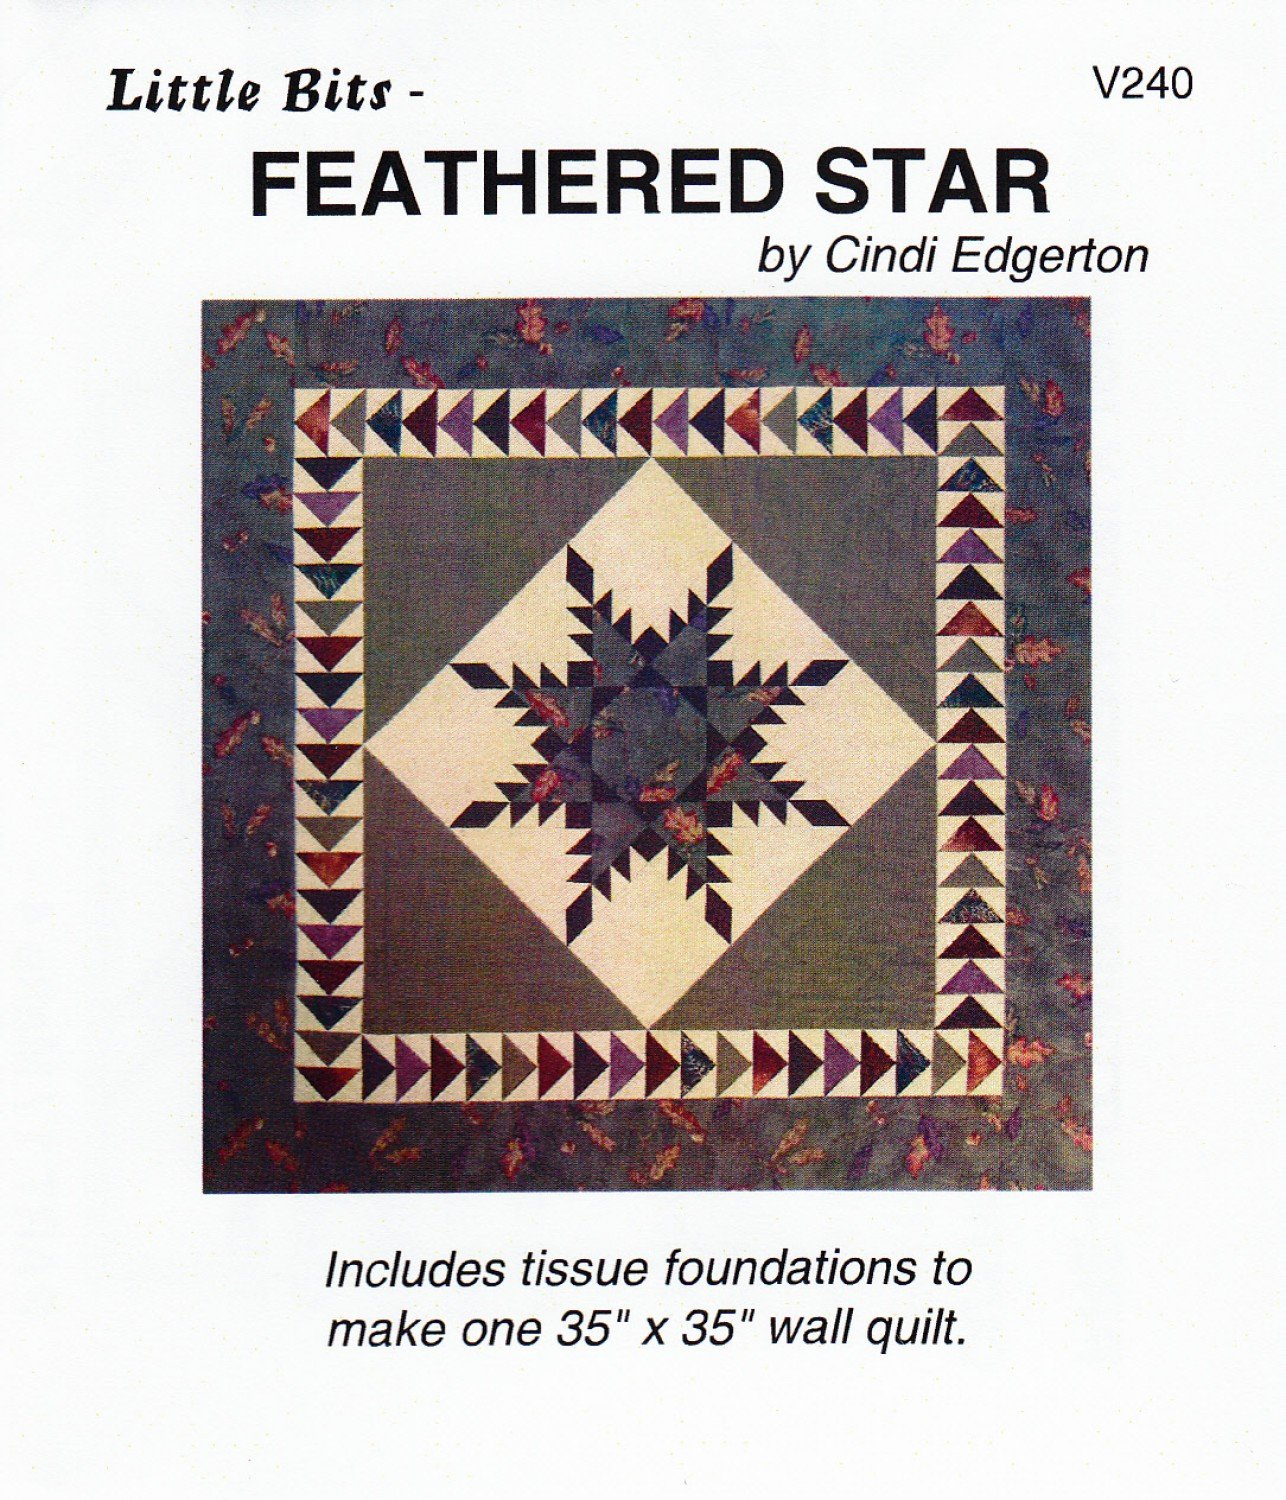 Little Bits Feathered Star